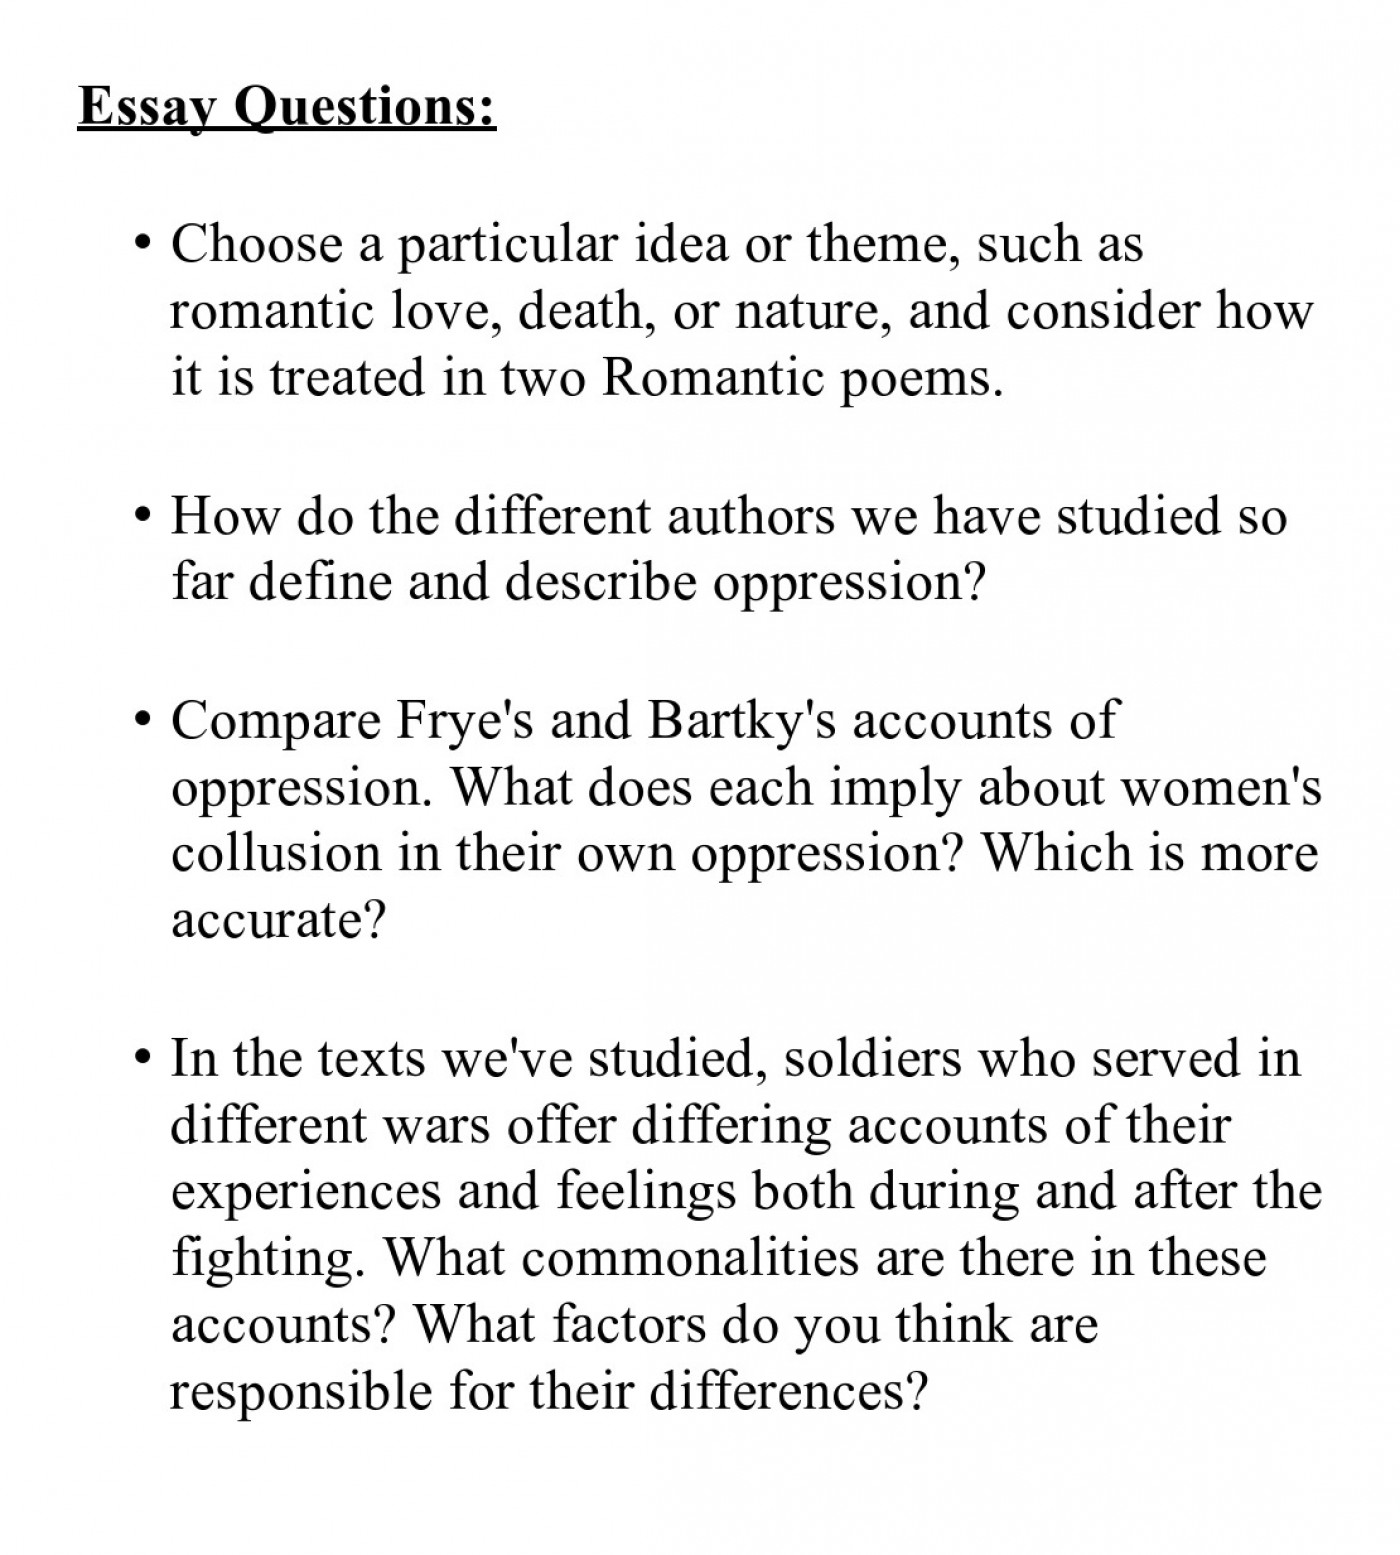 007 Essay Example Prompts Questions Best For Middle School Topics Frankenstein By Mary Shelley College 1400